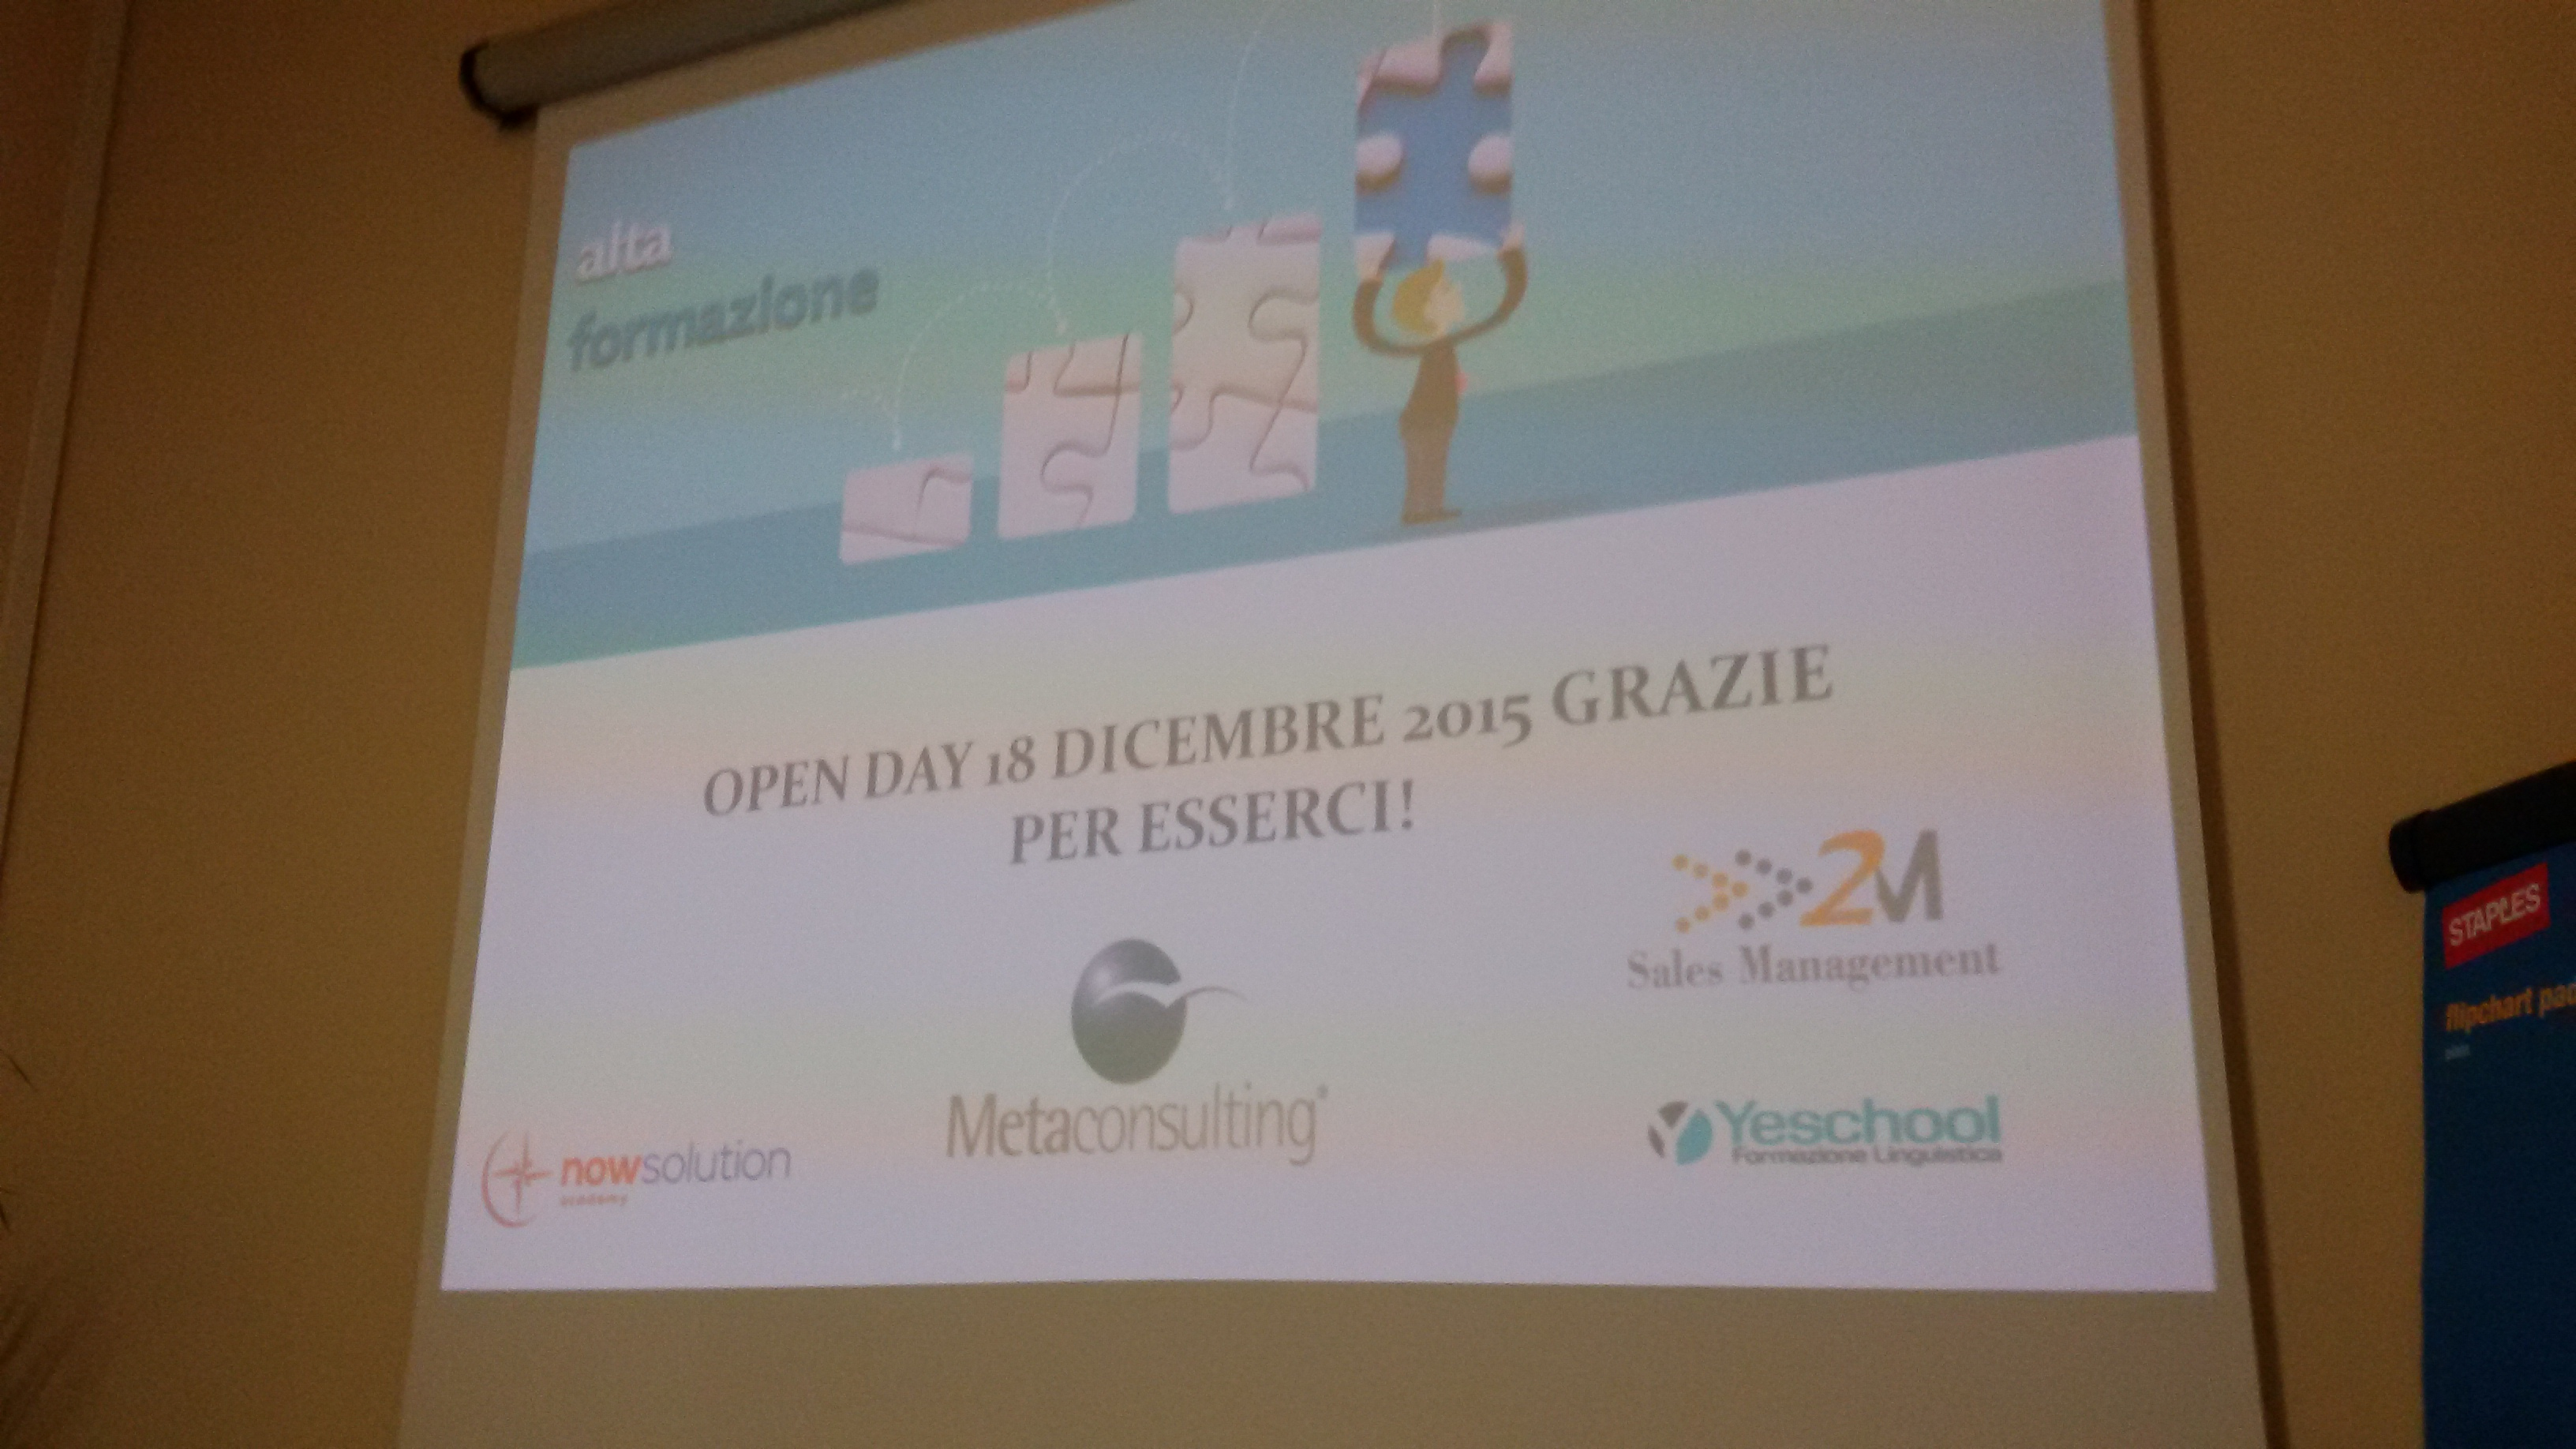 Open day Metaconsulting